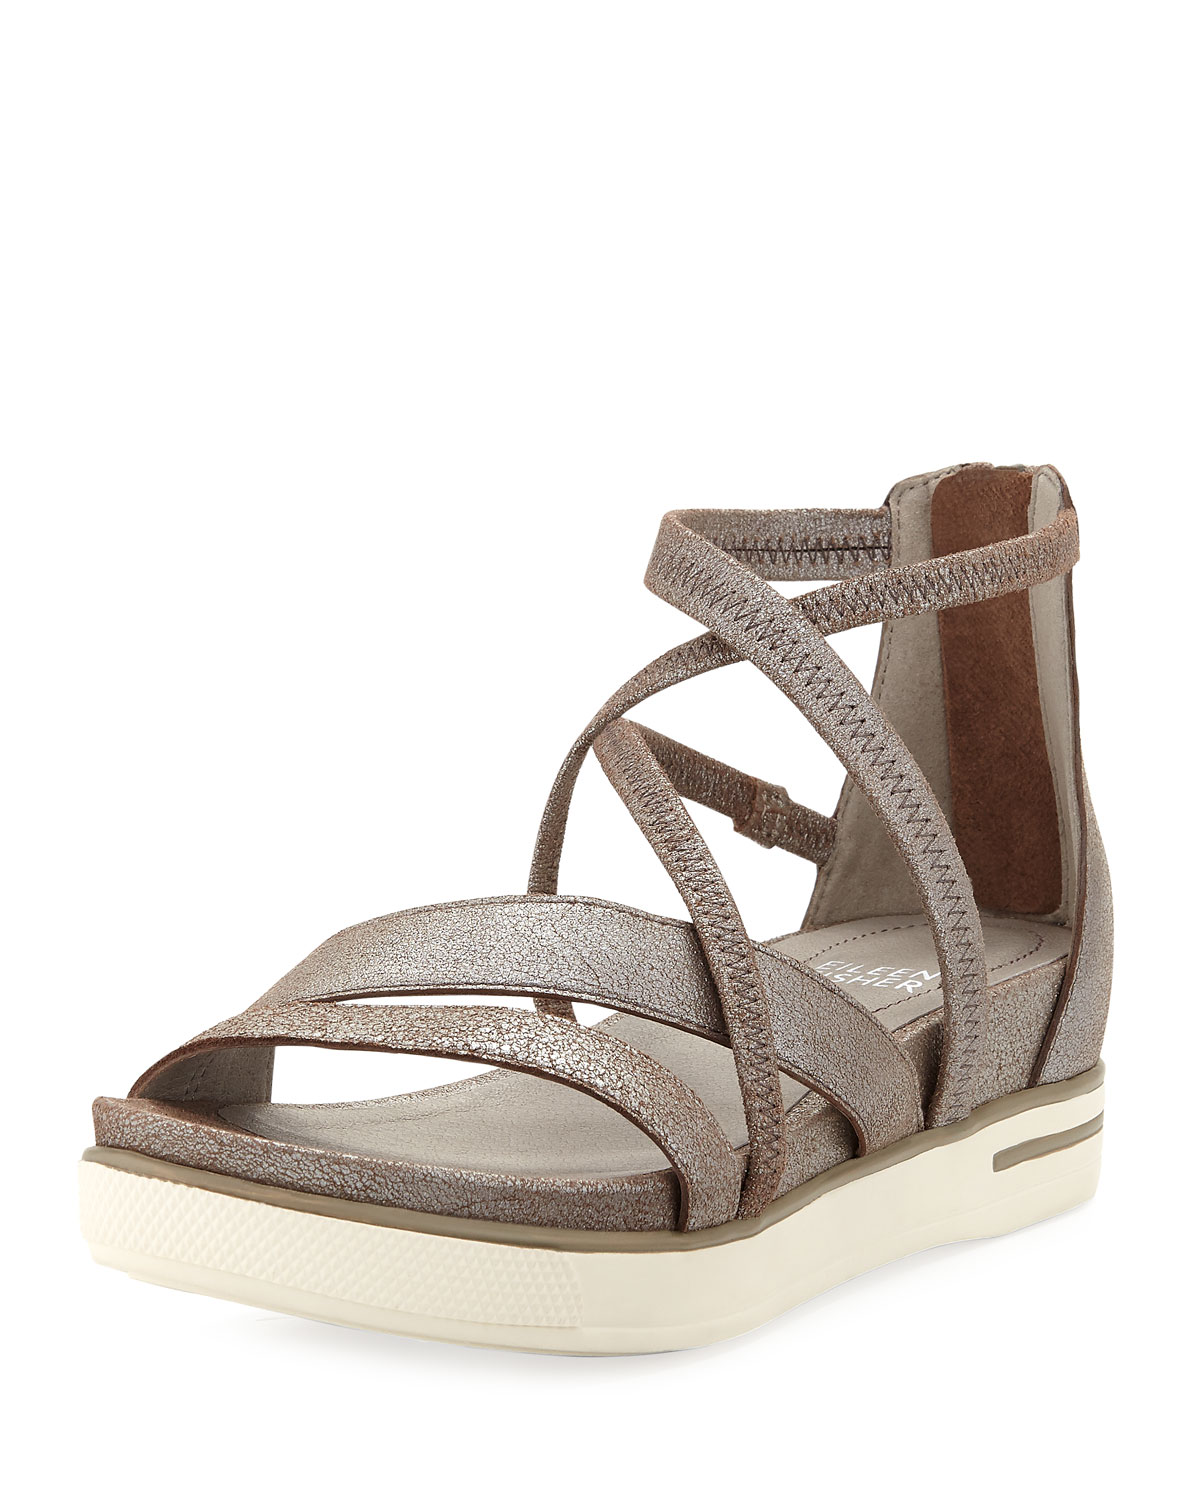 bc4248b4afe4 Eileen Fisher Skip Sport Metallic Leather Platform Sandals